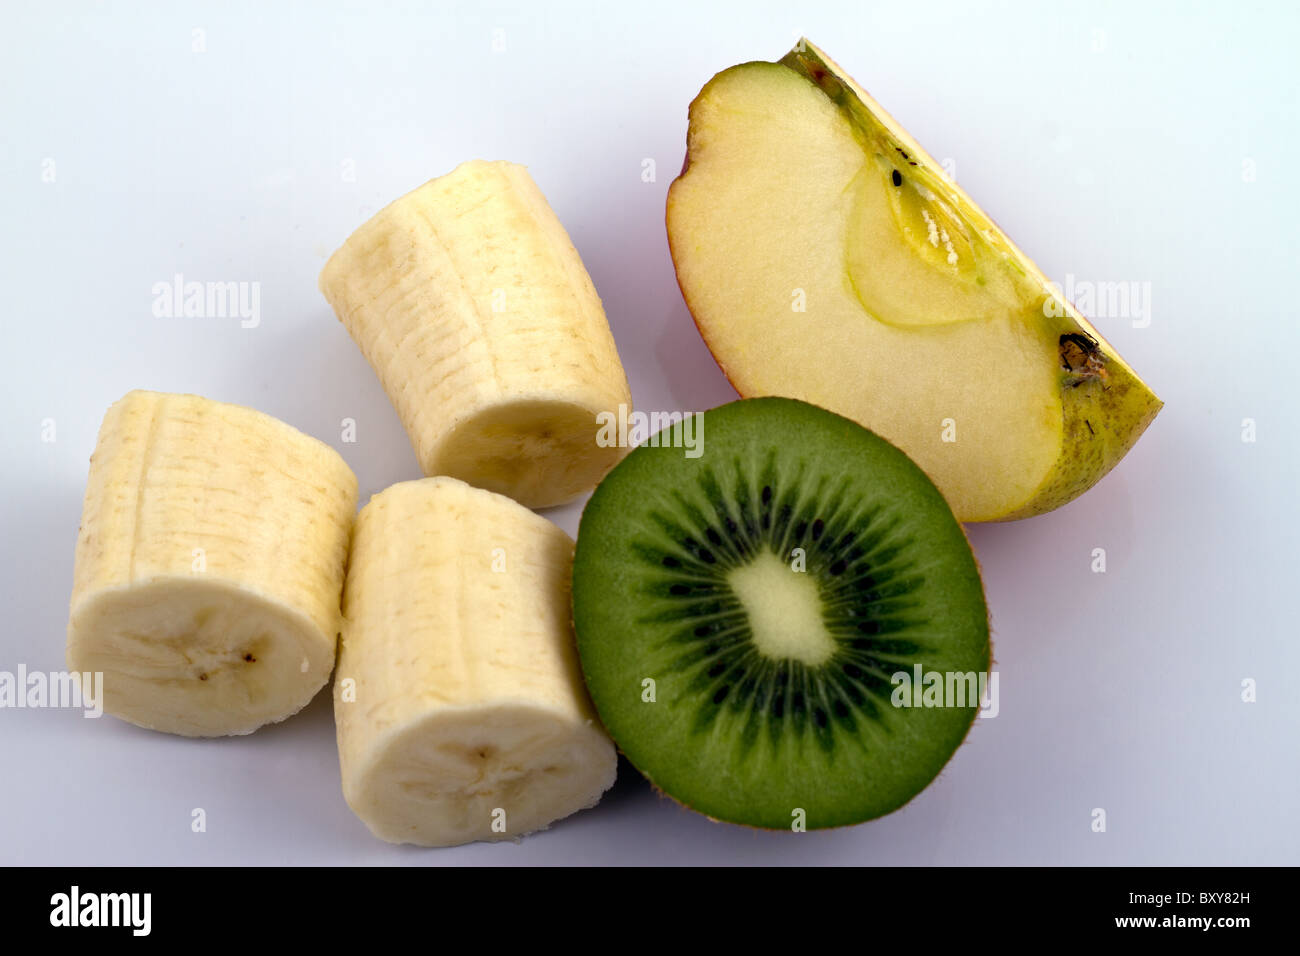 Banana Kiwi And Apple Pieces On Reflecting White Surface Stock